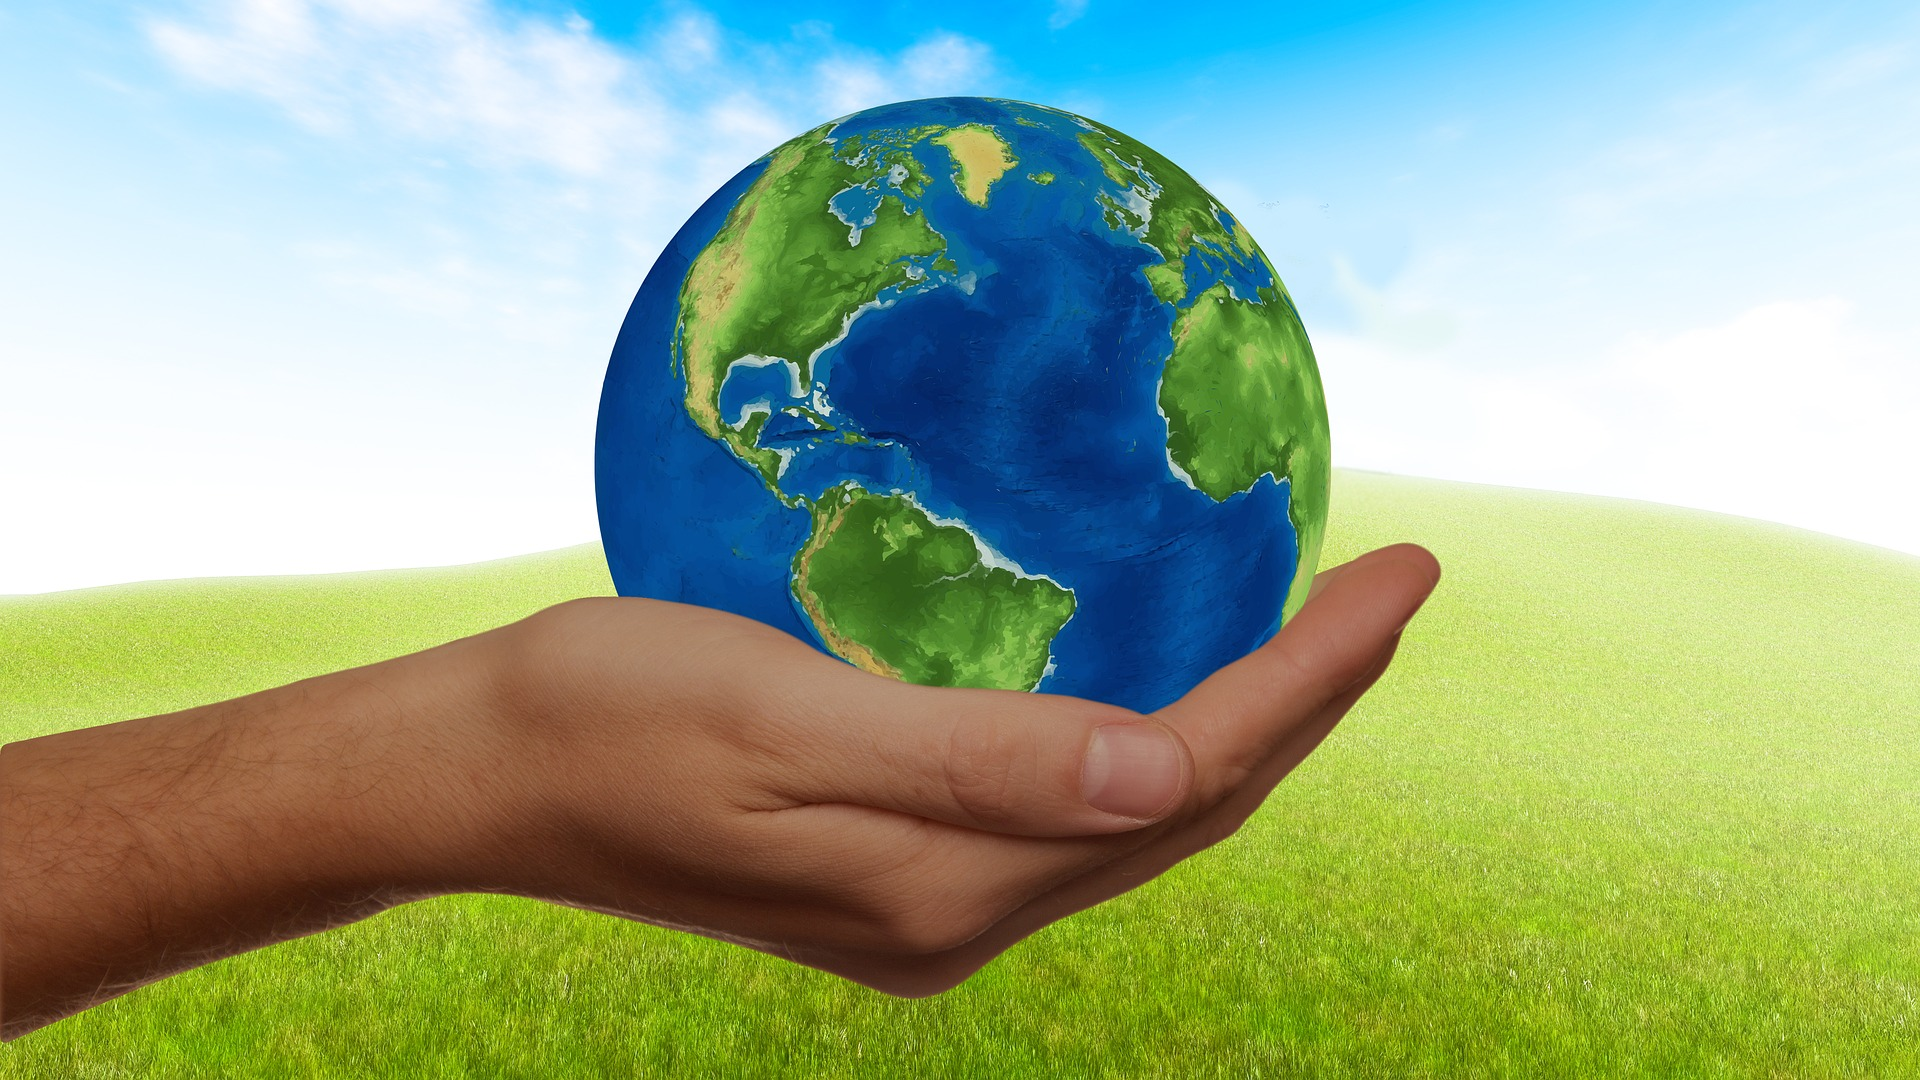 hand holding earth against blue sky background